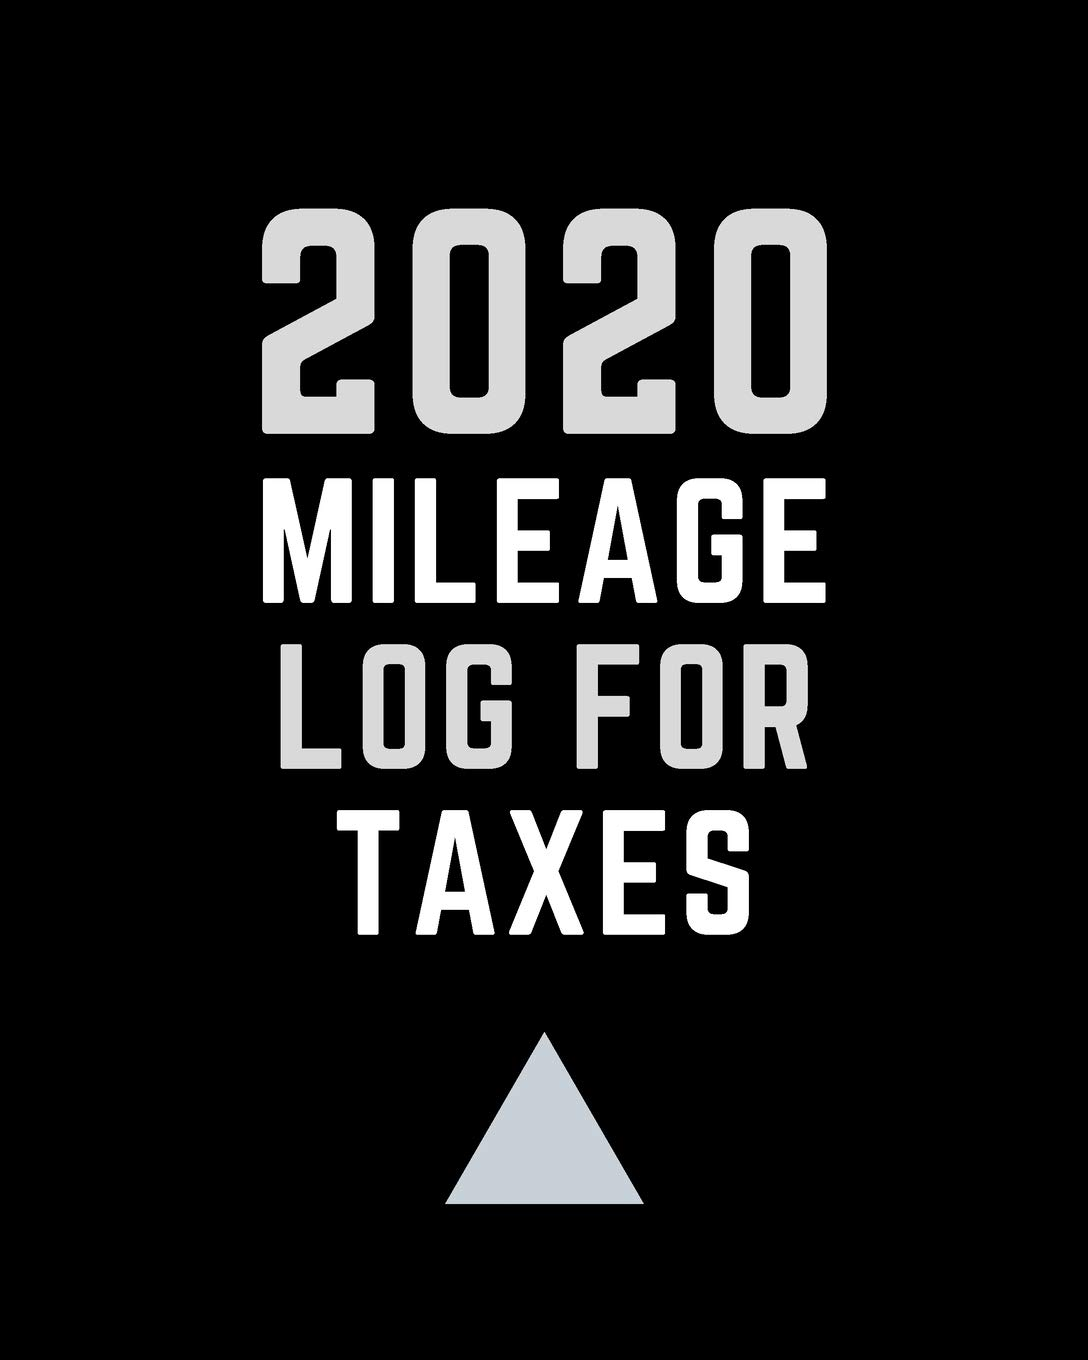 Business Tax Deduction 2020.Amazon Com 2020 Mileage Log For Taxes Track Record Miles